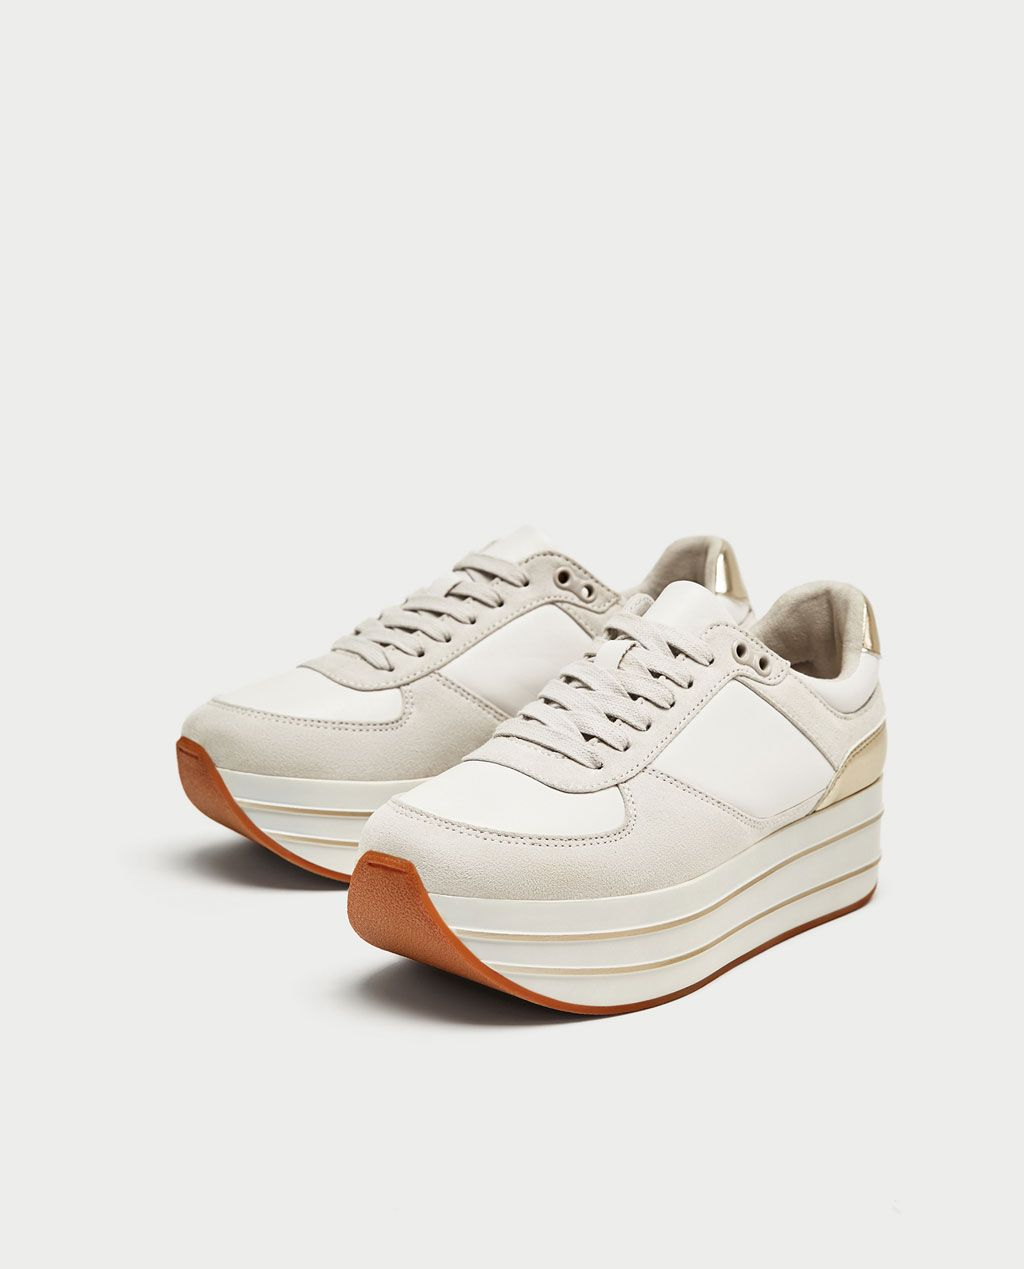 3e9a455ad91f Image 1 of PLATFORM SNEAKERS from Zara White Platform Sneakers